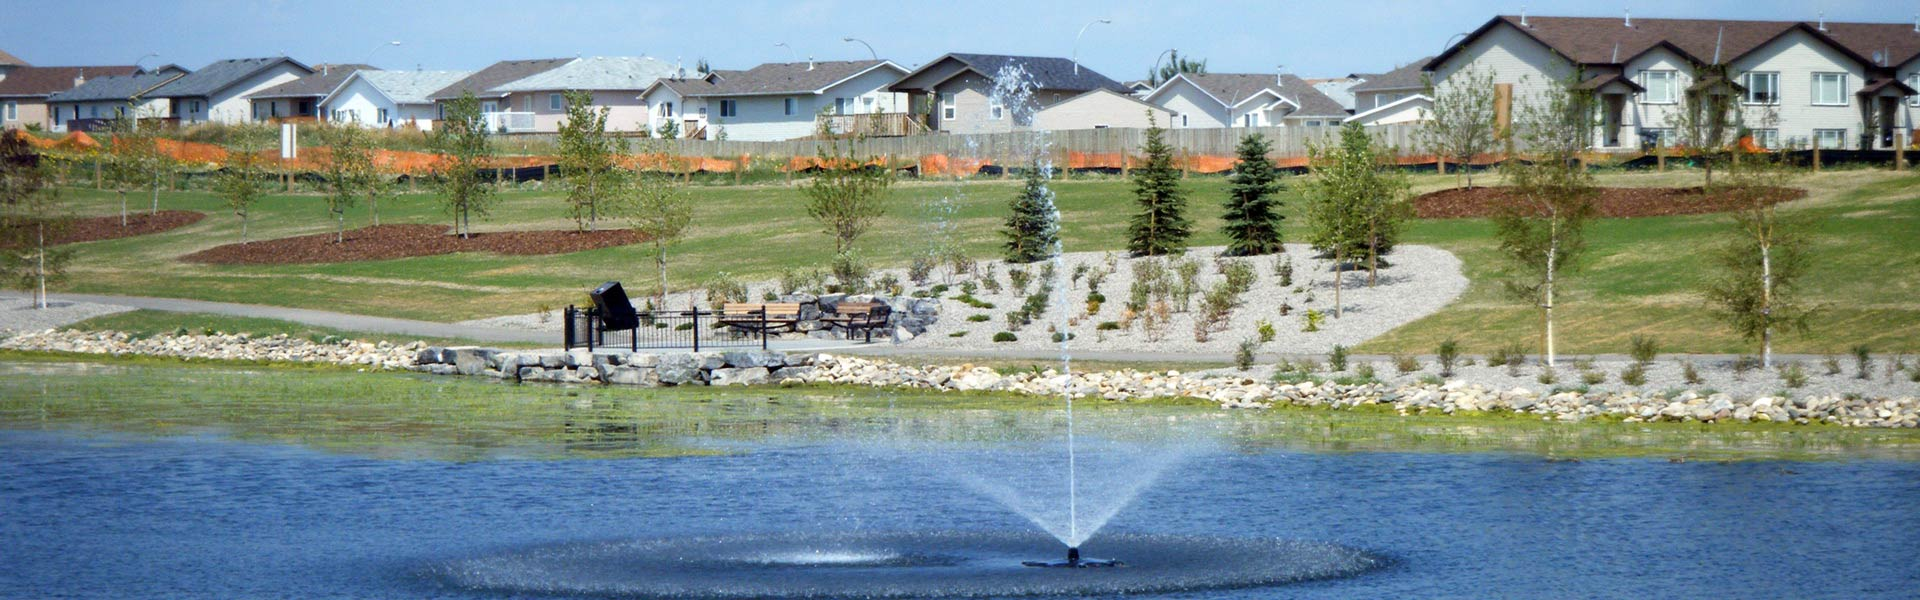 Lethbridge-Crossings-Phase-3-and-4